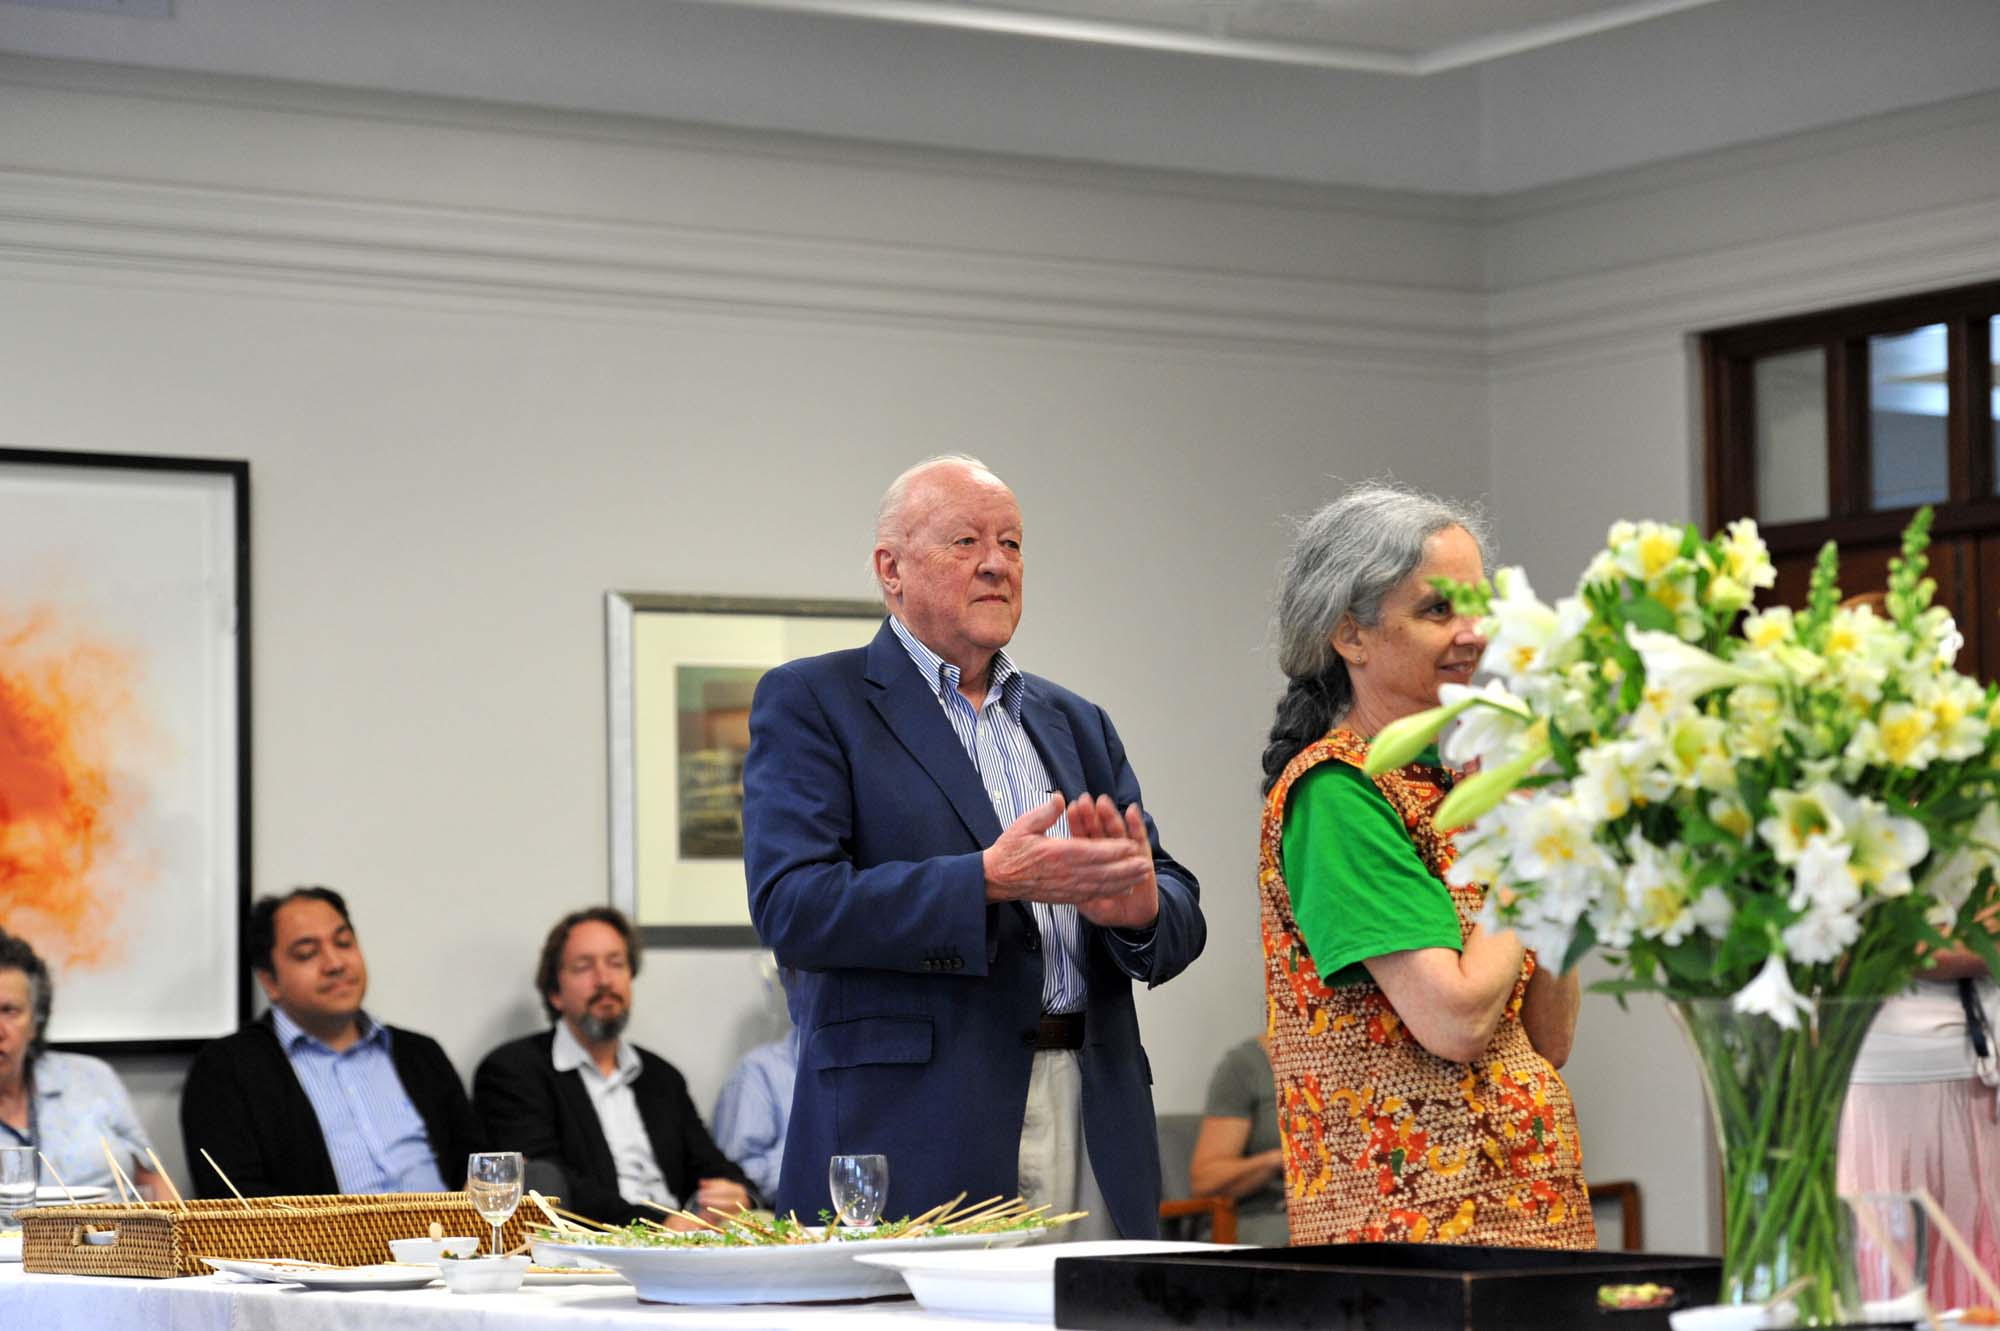 At a Senior Leadership Group farewell function for Prof Paula Ensor in the Mafeje Room on 19 November 2013.